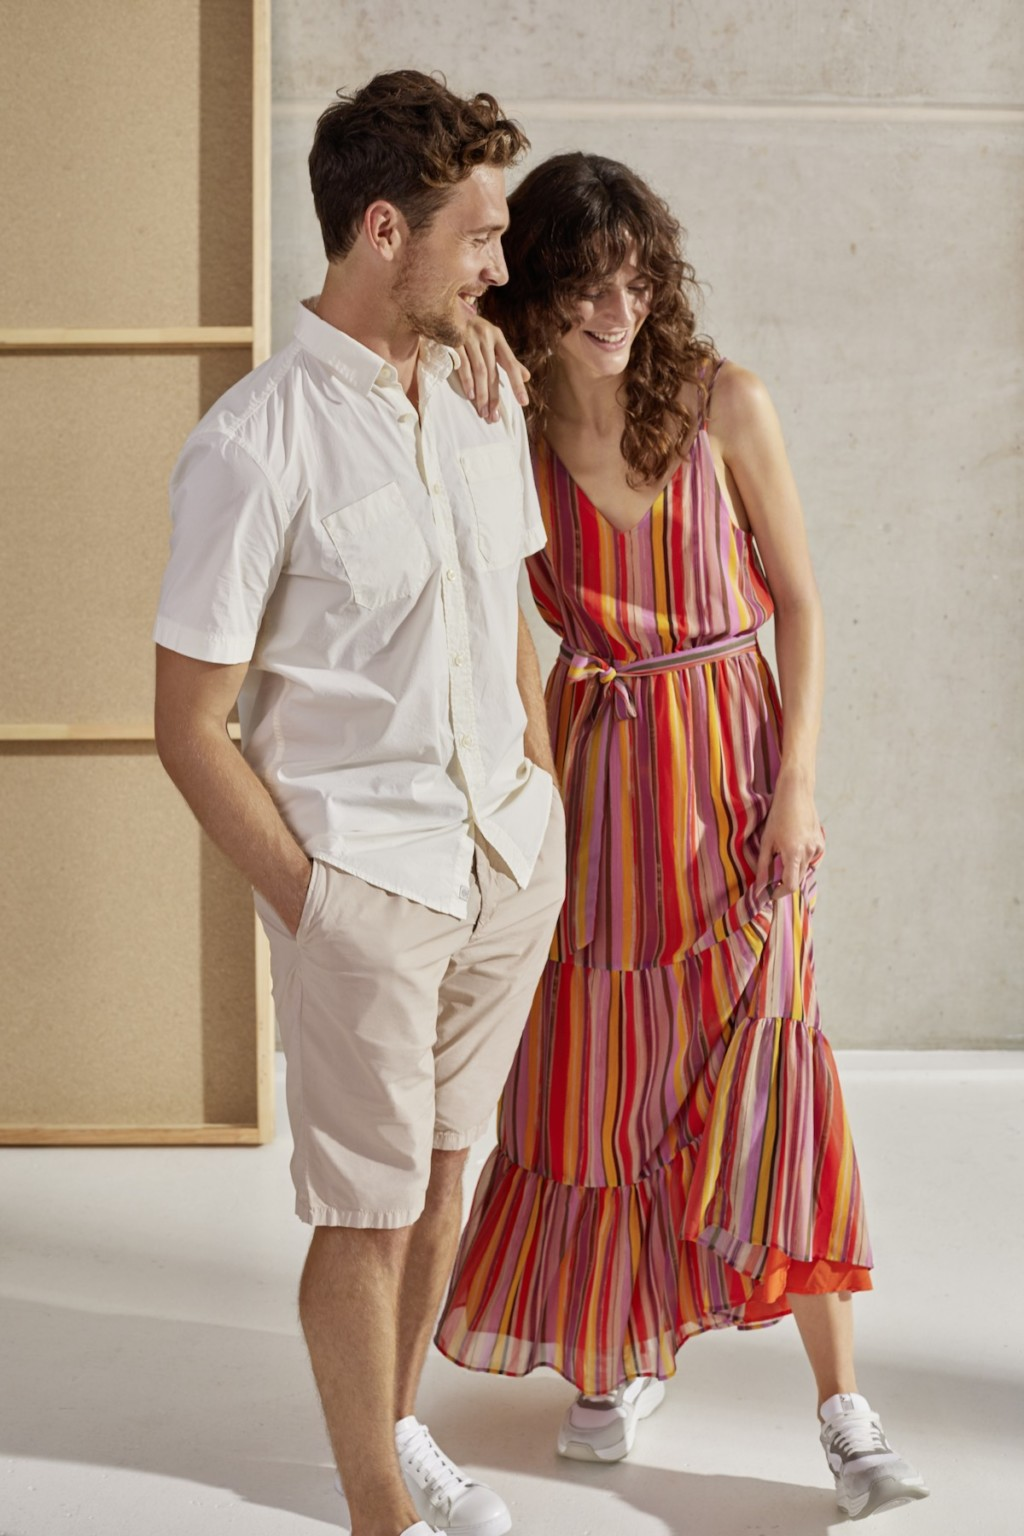 Ricarda Venjacob Styling Commercial